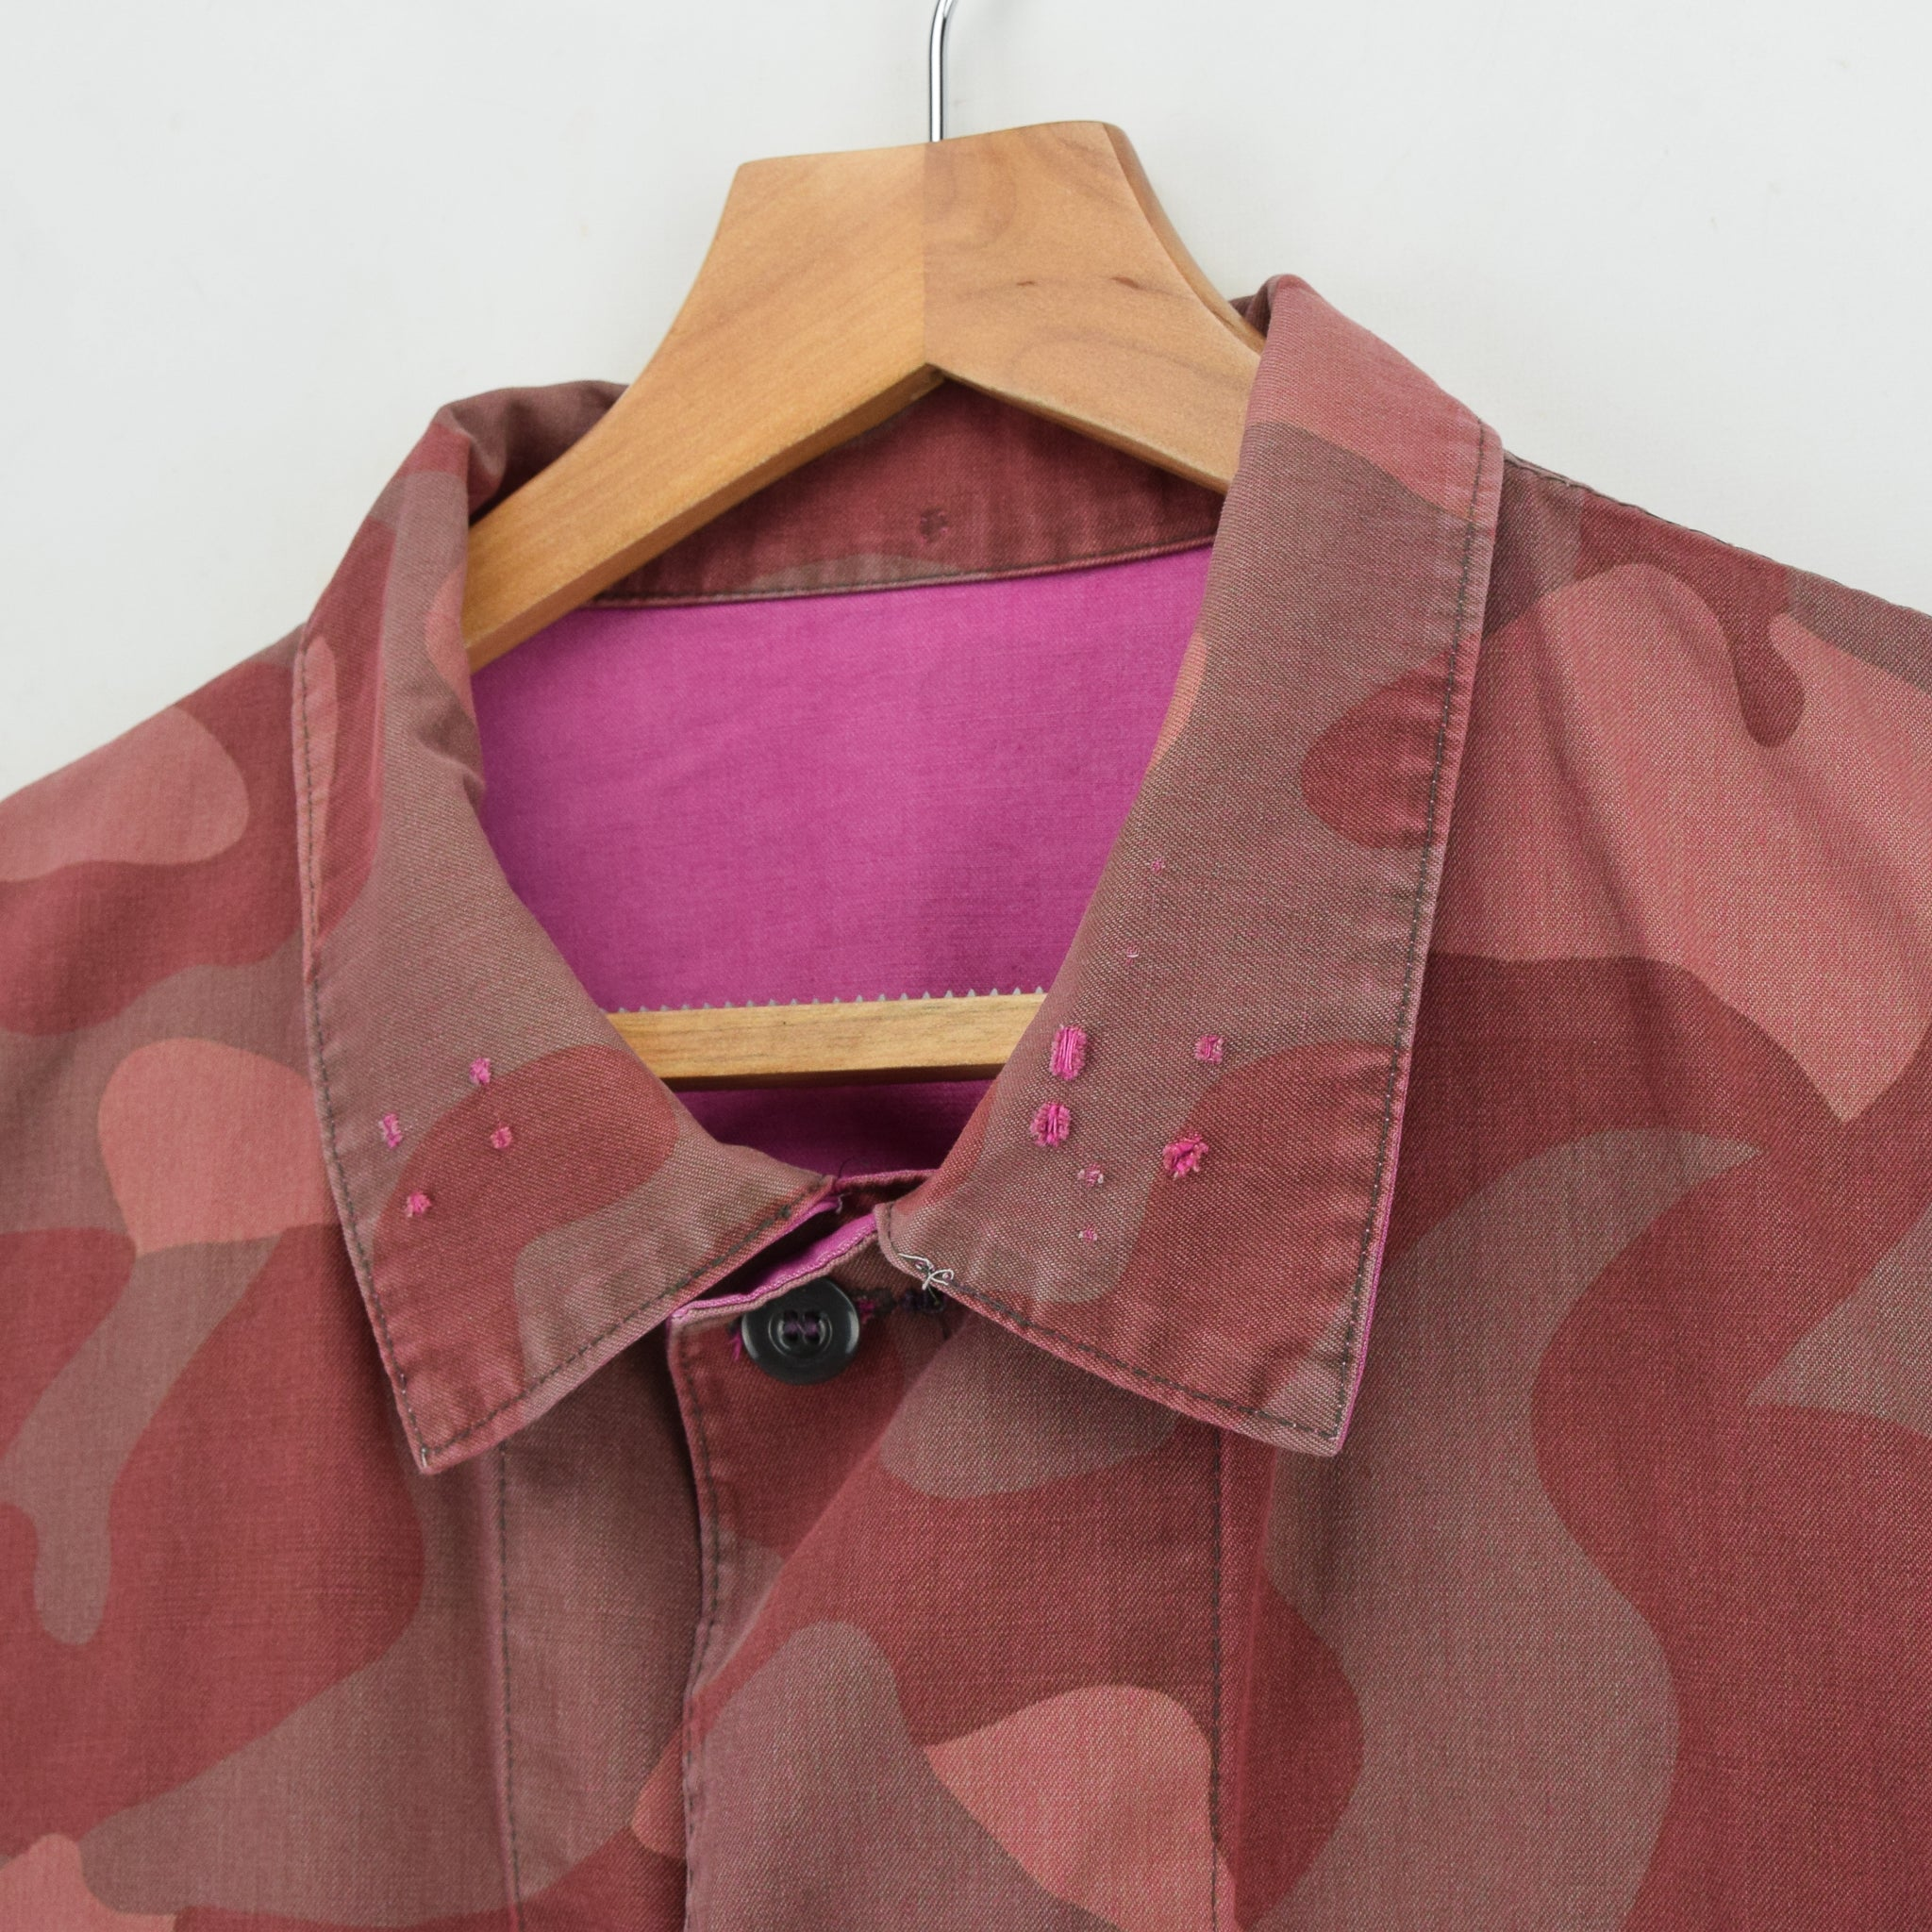 Vintage 70s Military Finnish Army Pink Overdyed Camo Mountain Field Jacket XL collar